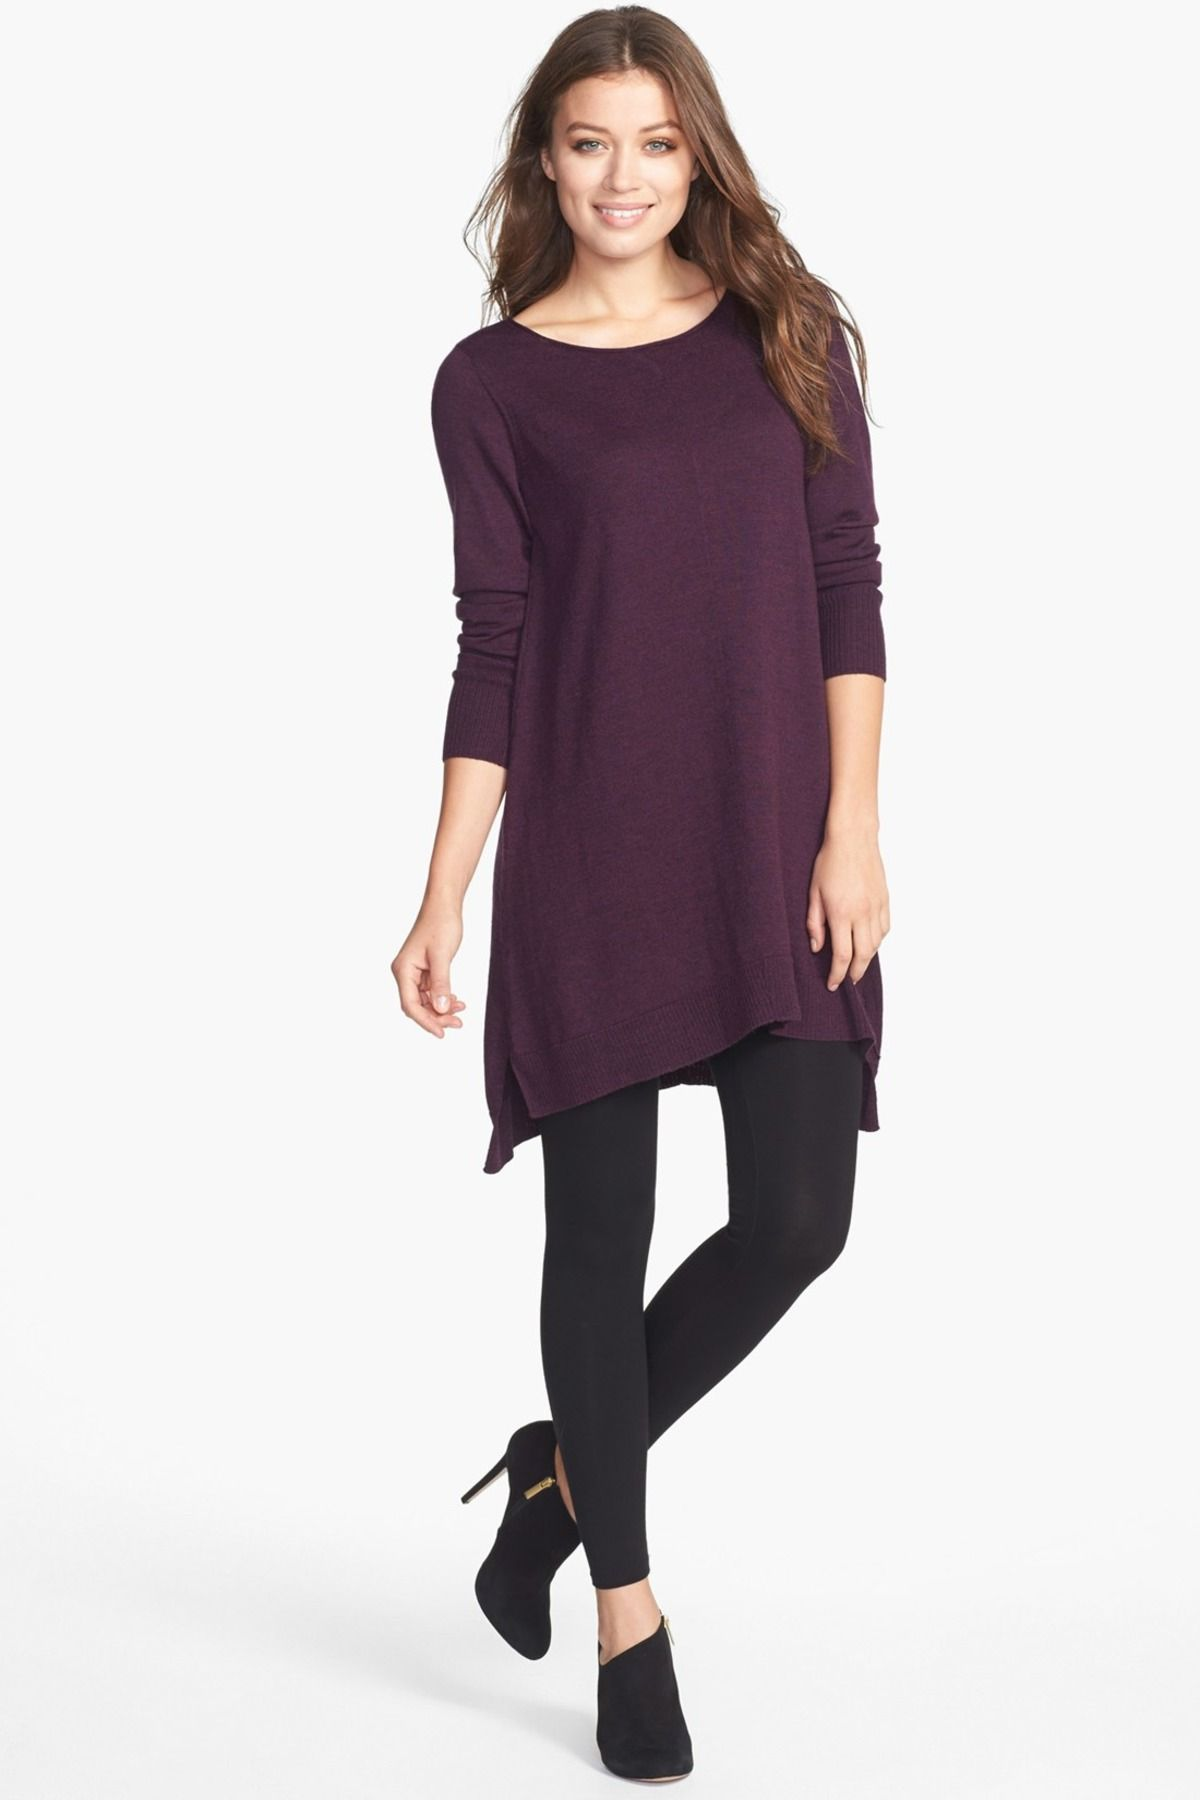 cashmere neck rack by nordstrom ballet pin eileen fisher sweater and tunic on